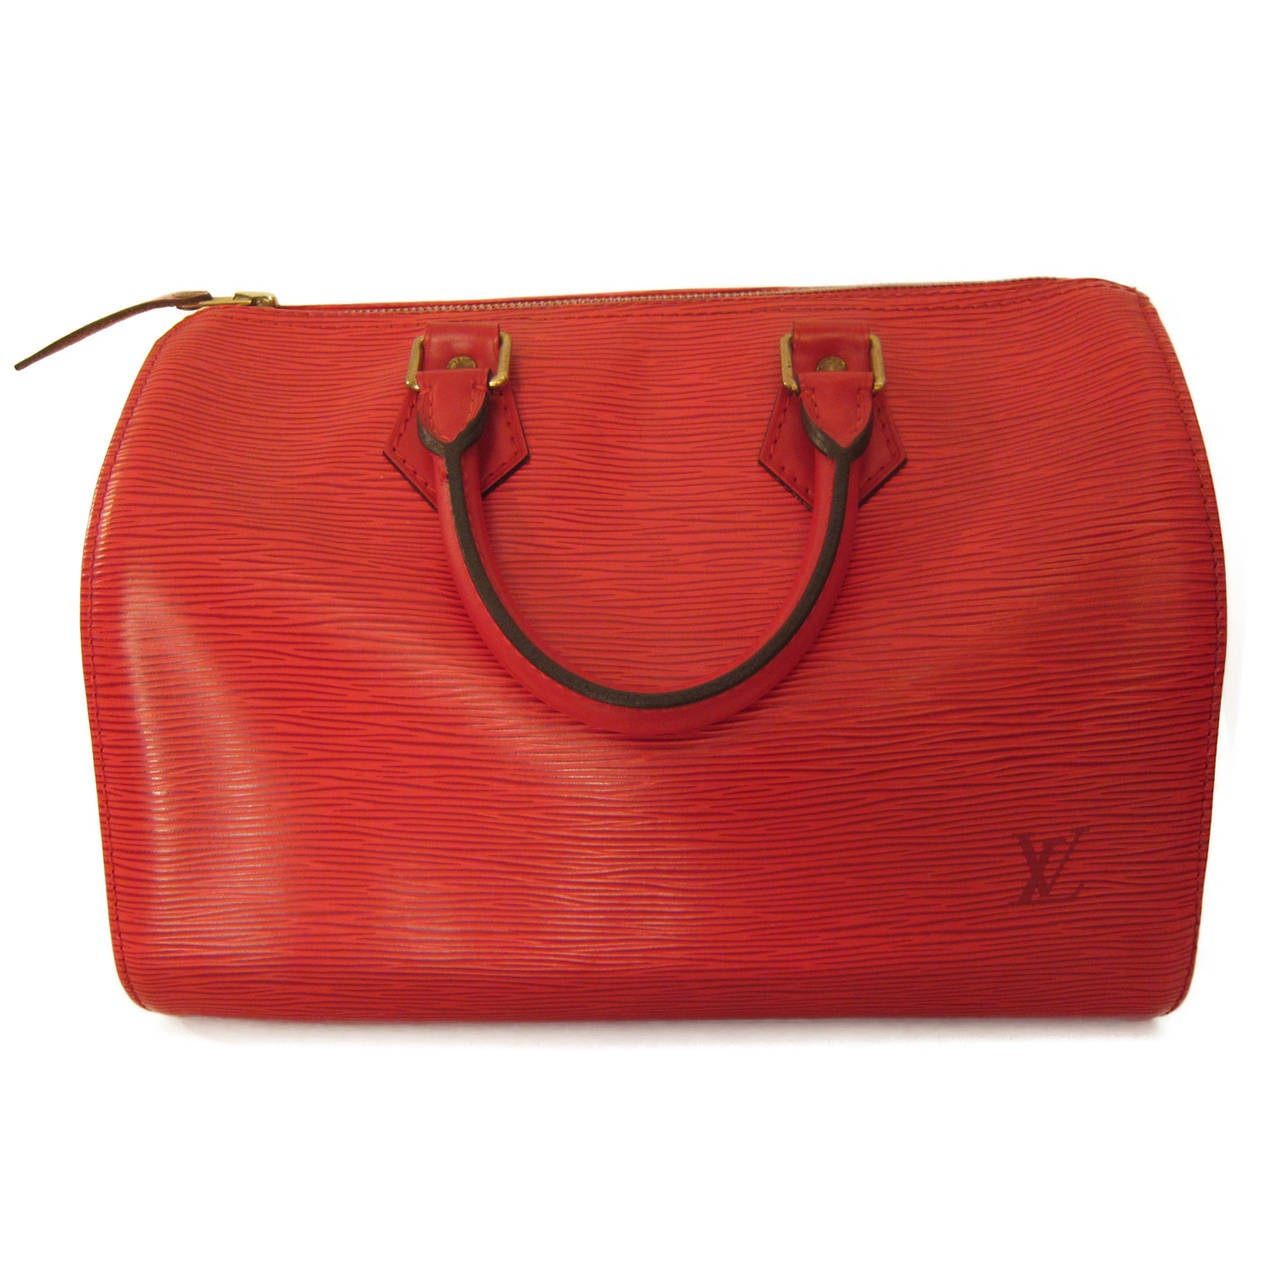 Classic Louis Vuitton Speedy 30 bag in epi red leather.  It has zip closure with original Louis Vuitton padlock and keys.